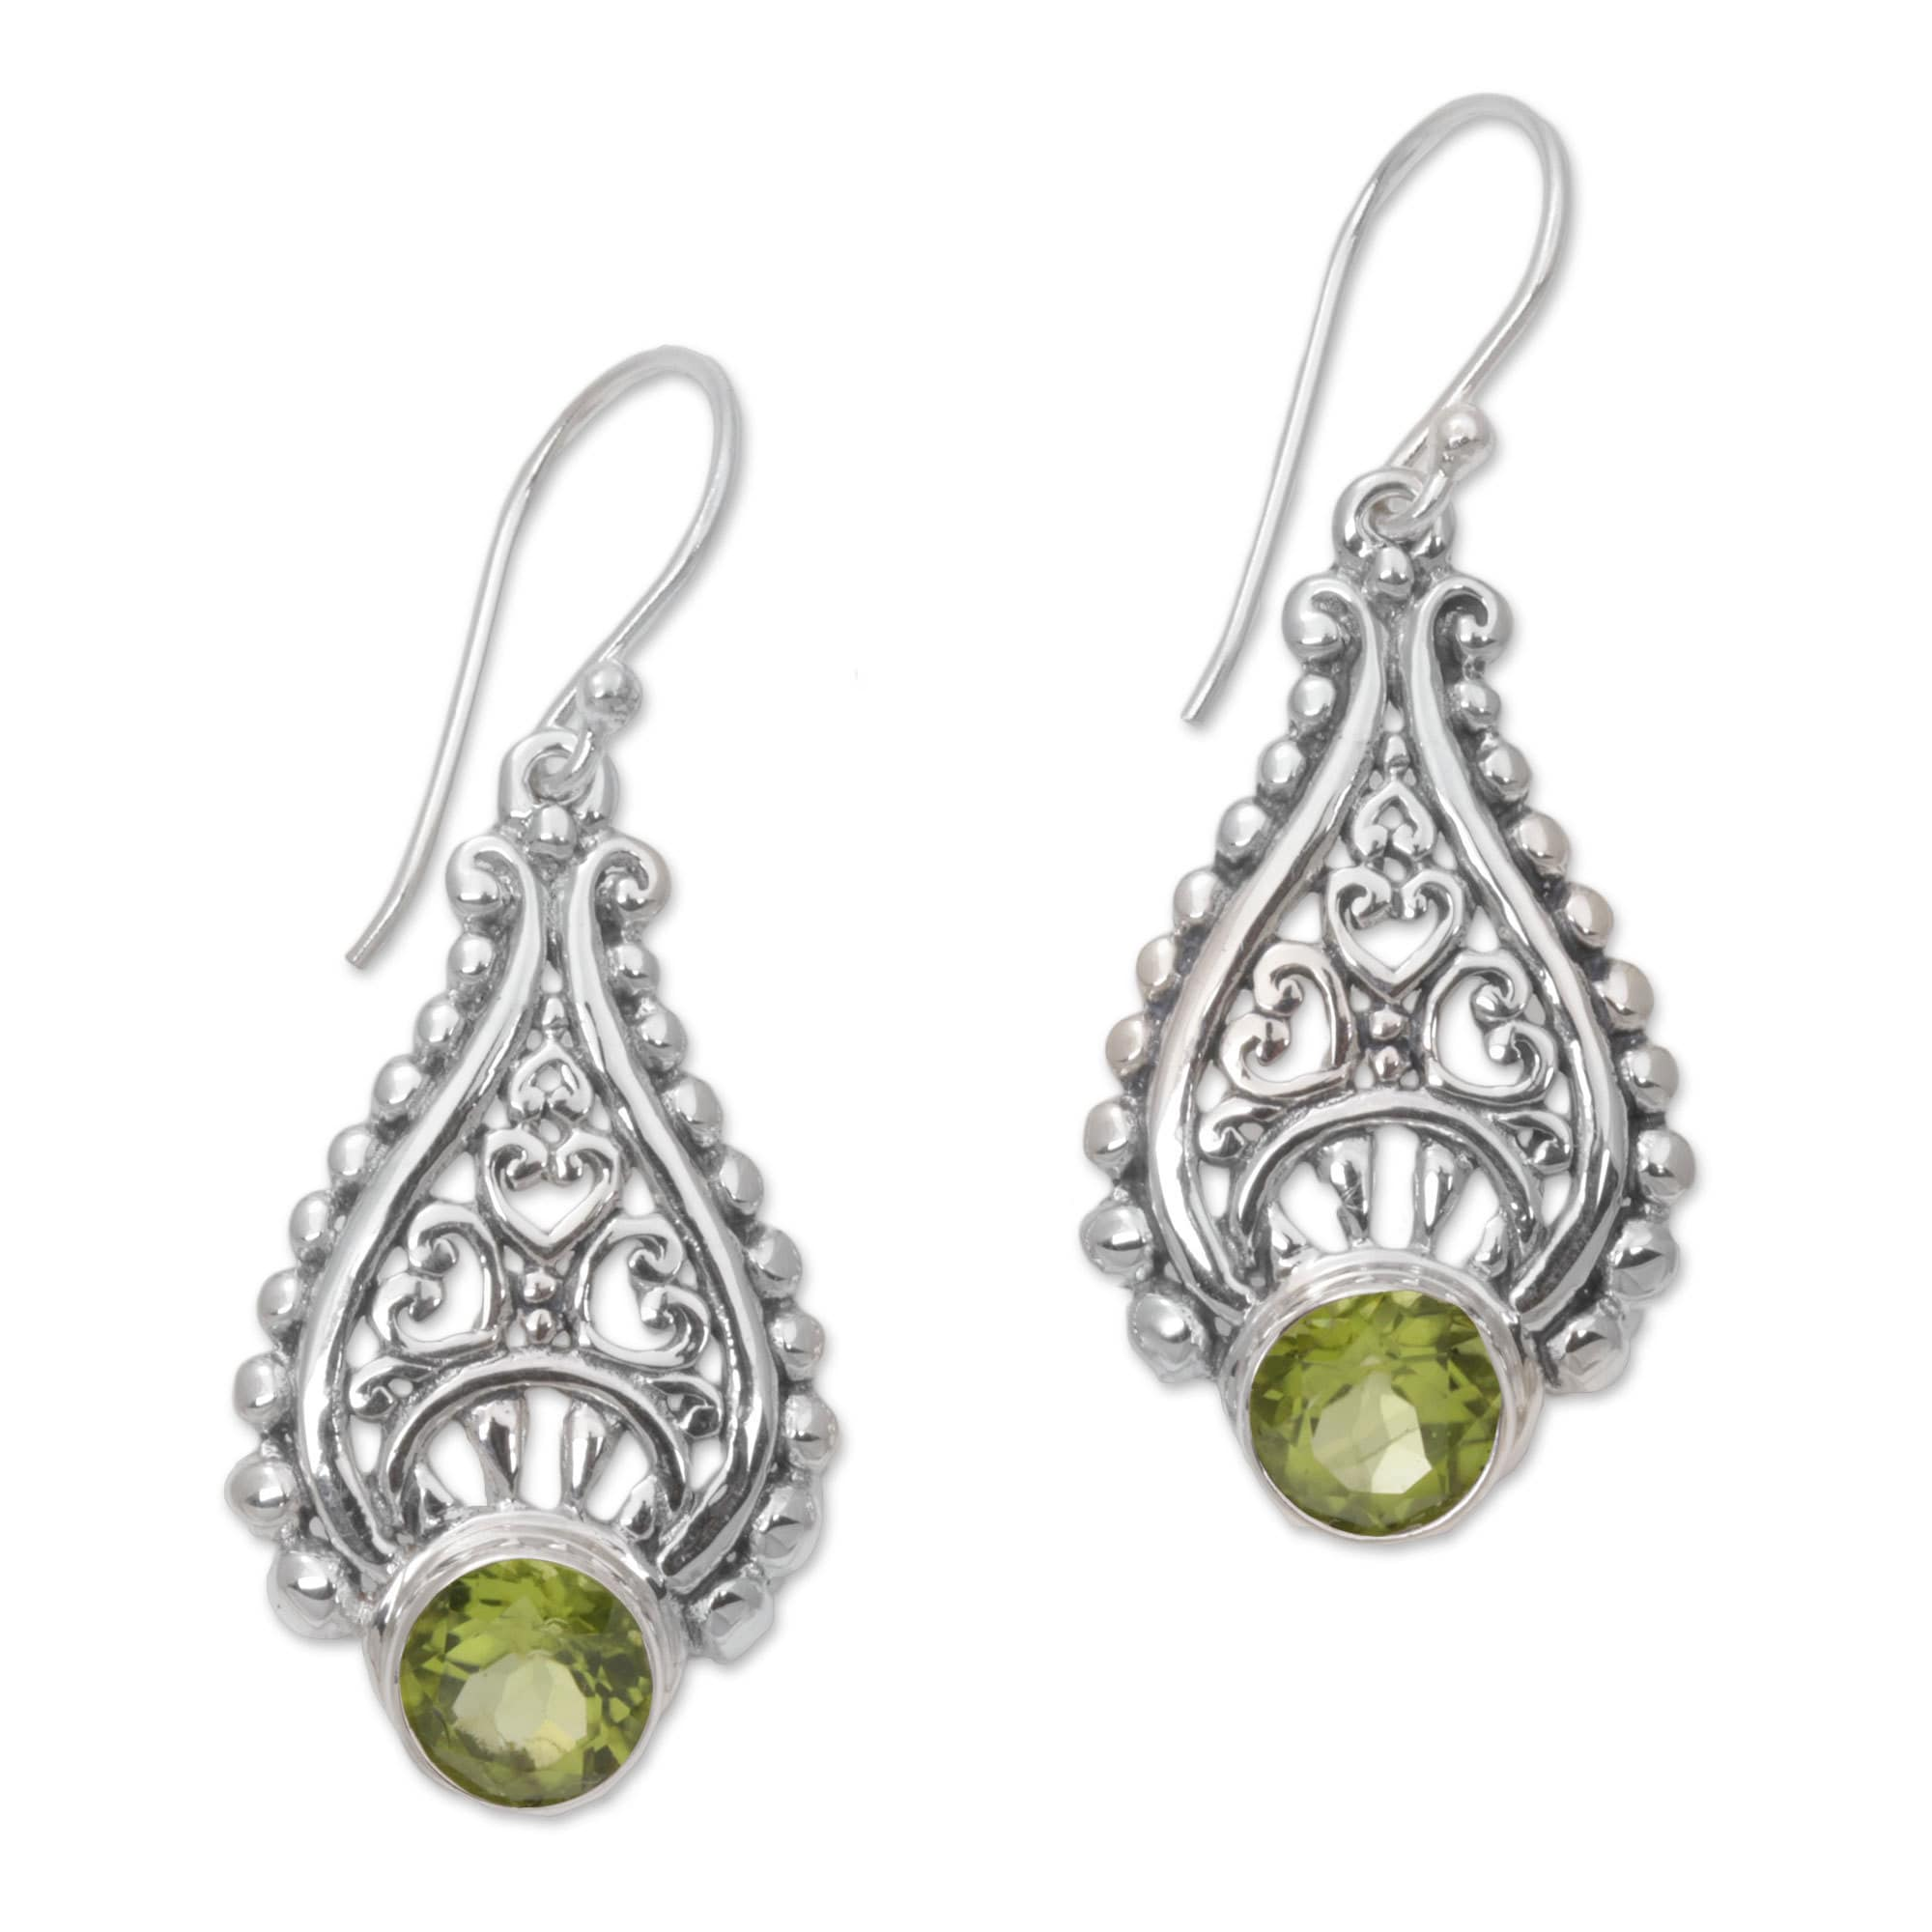 Handmade Peridot Dangle Earrings